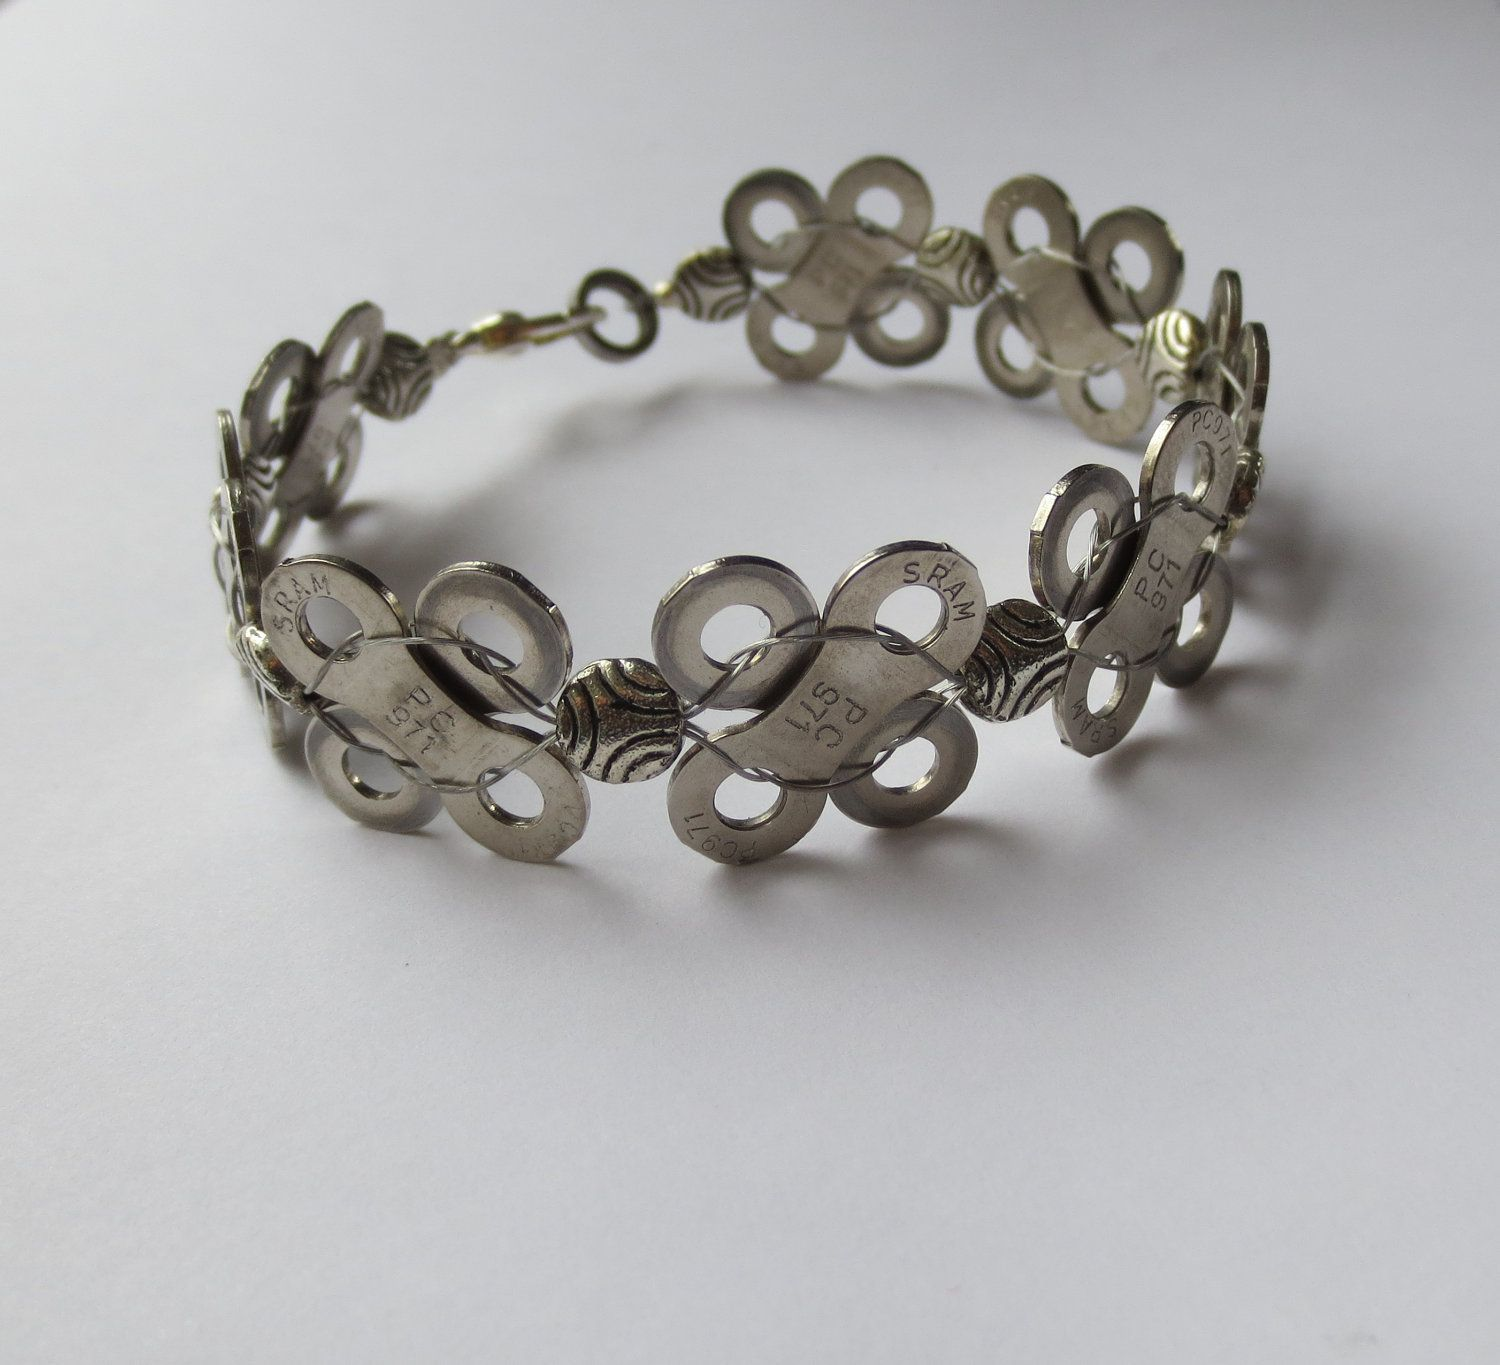 jewelry making bike parts | Bicycle Jewelry Chain Link Bracelet Recycled Bicycle Jewelry Sports ...